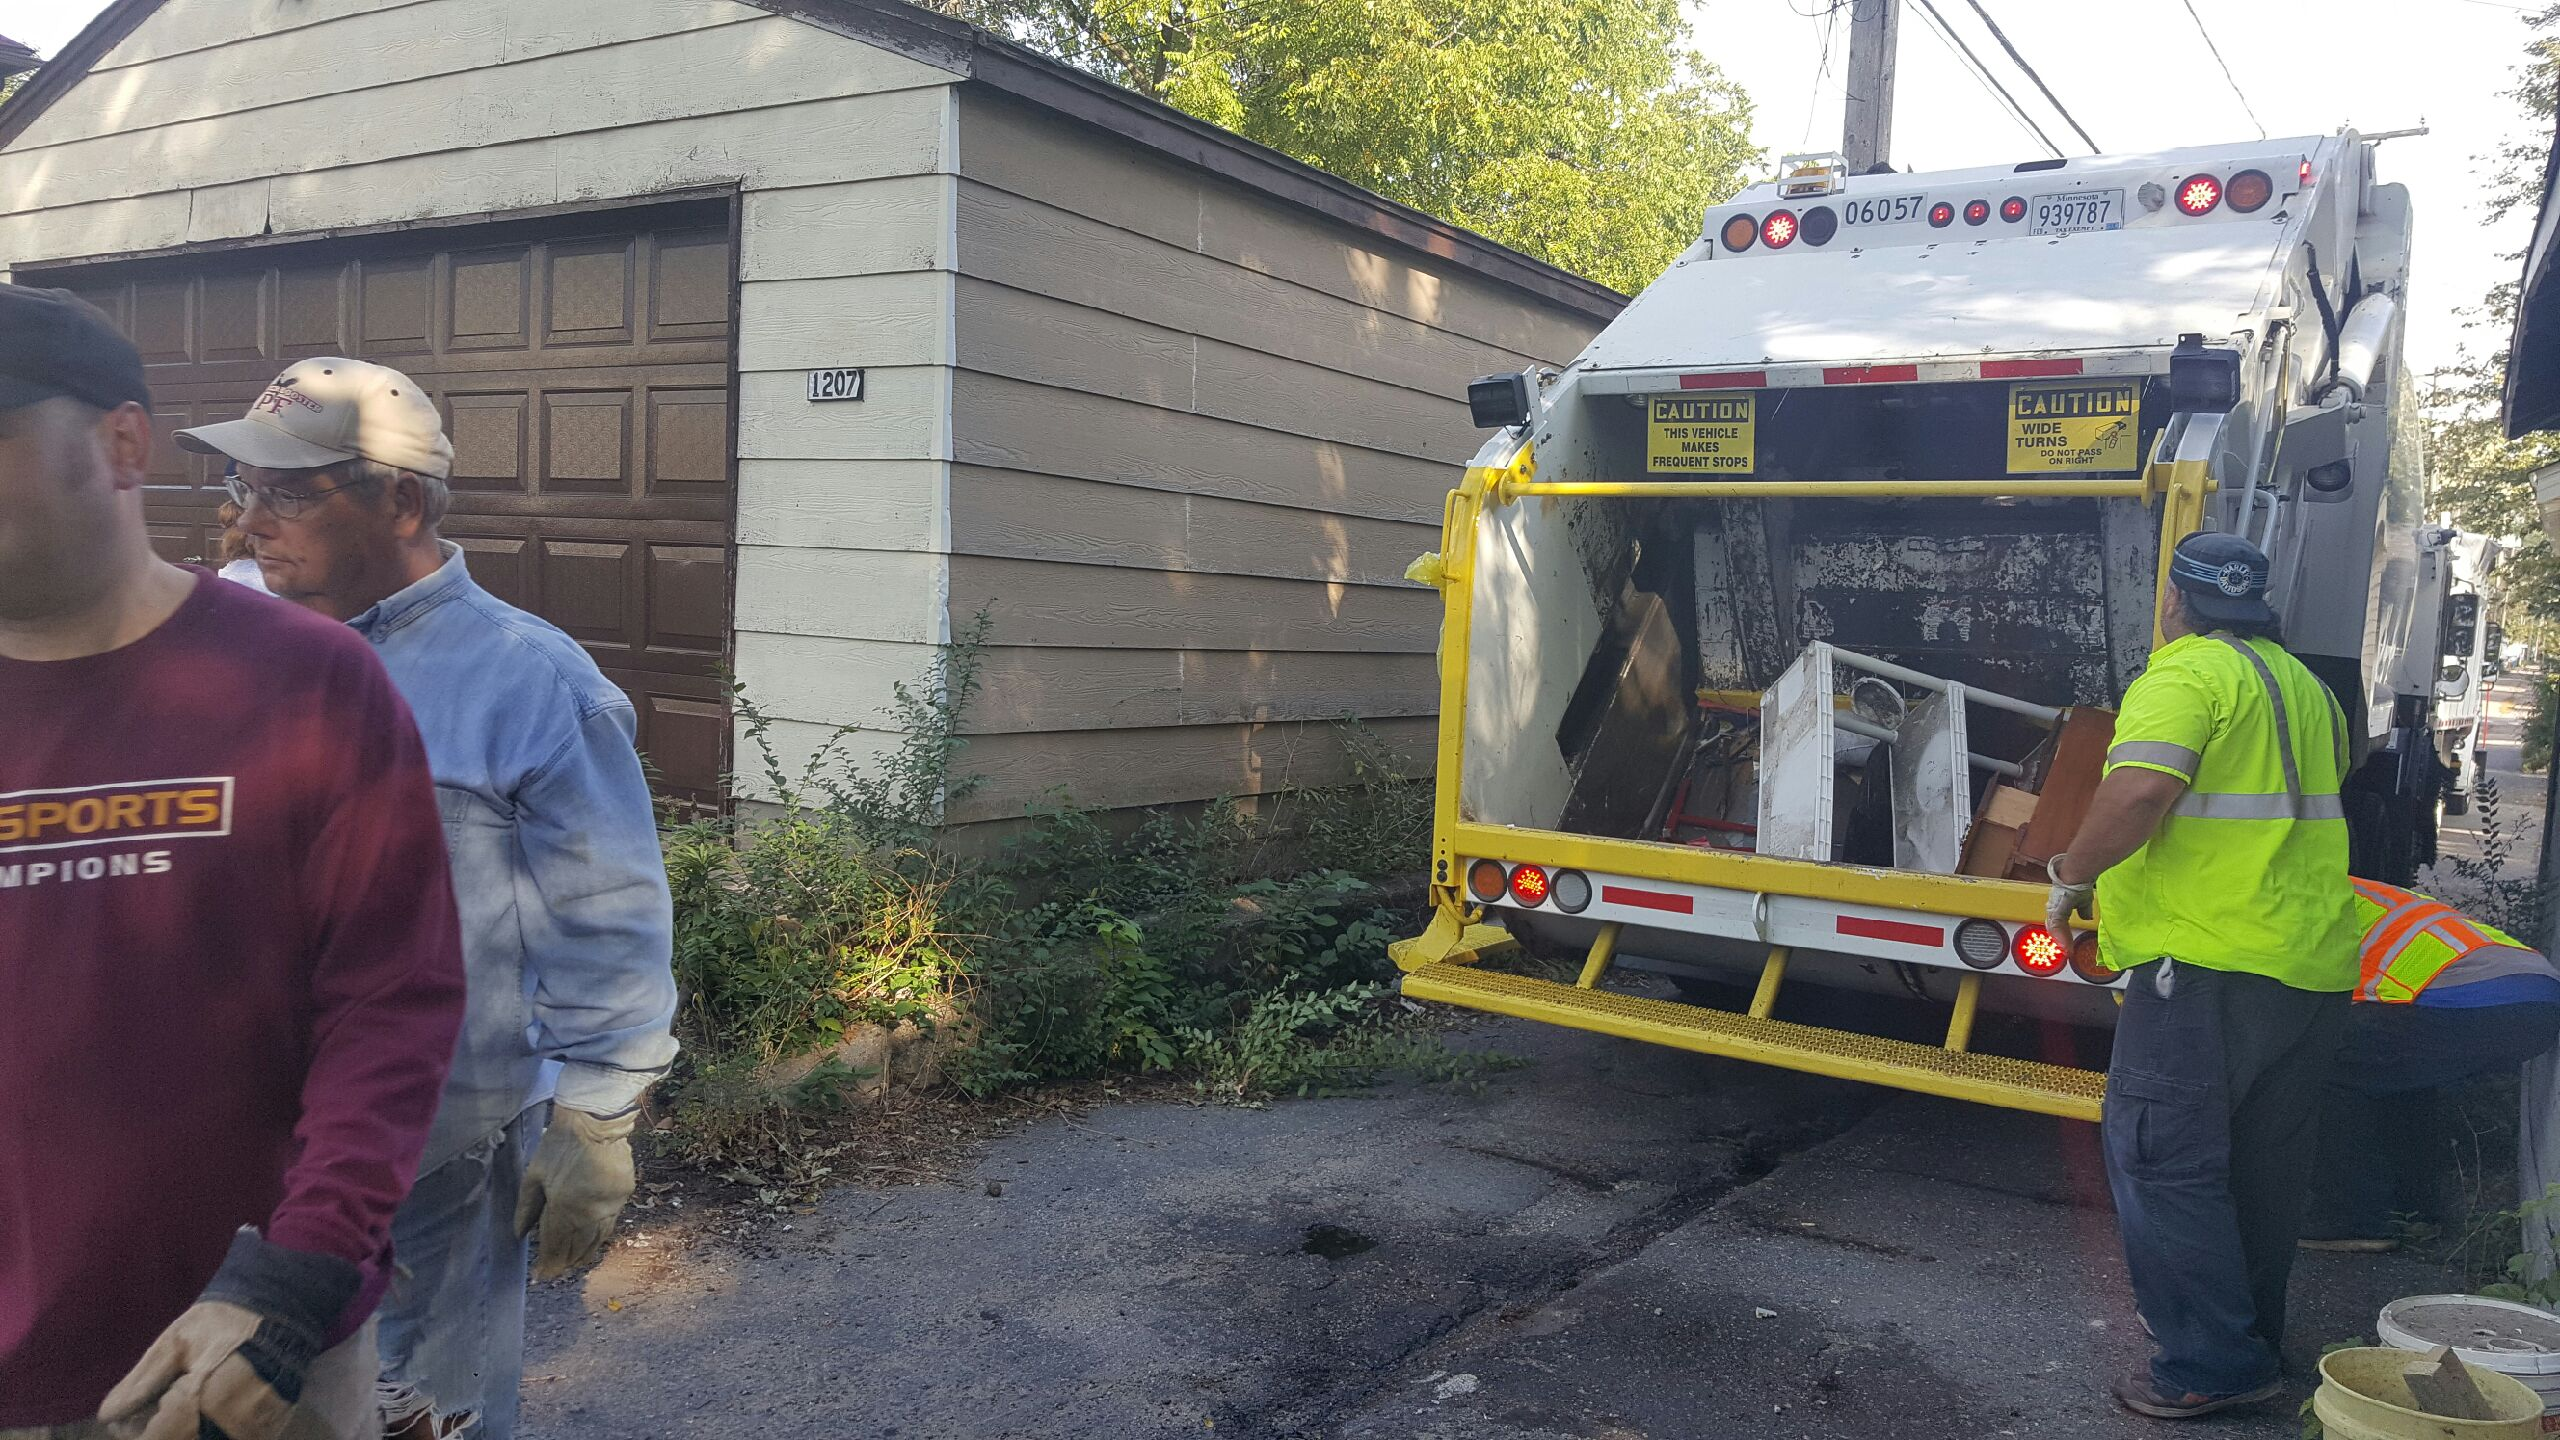 A garbage truck picking up refuse in an alley